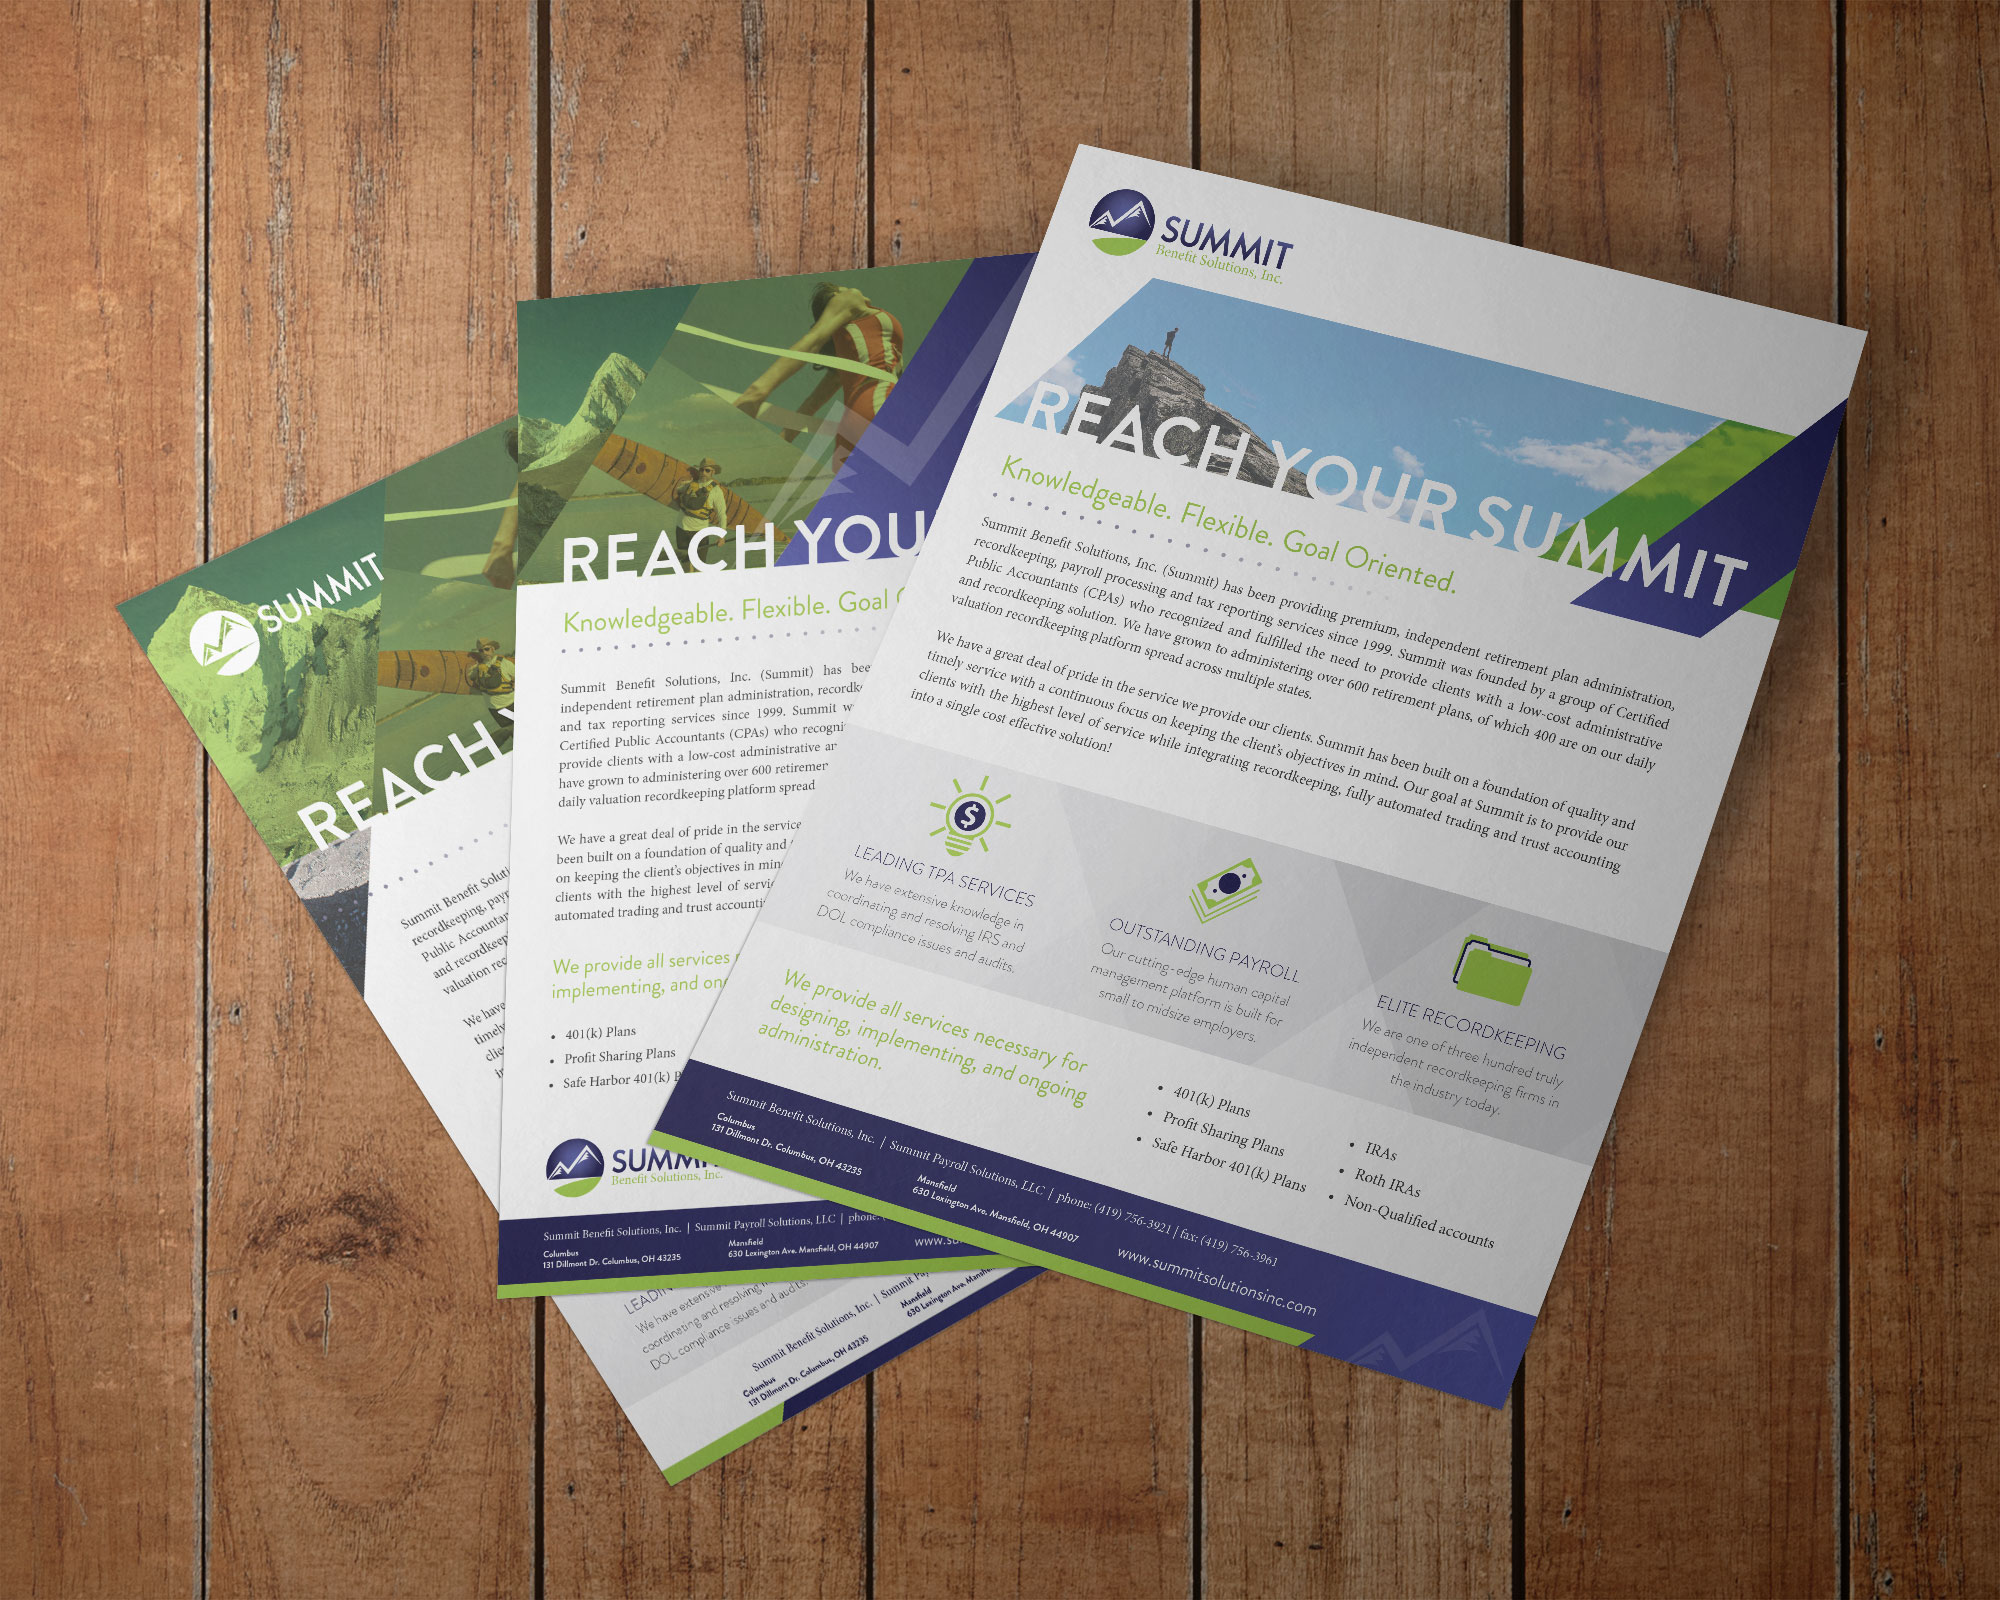 Summit overview handouts laid out on a table